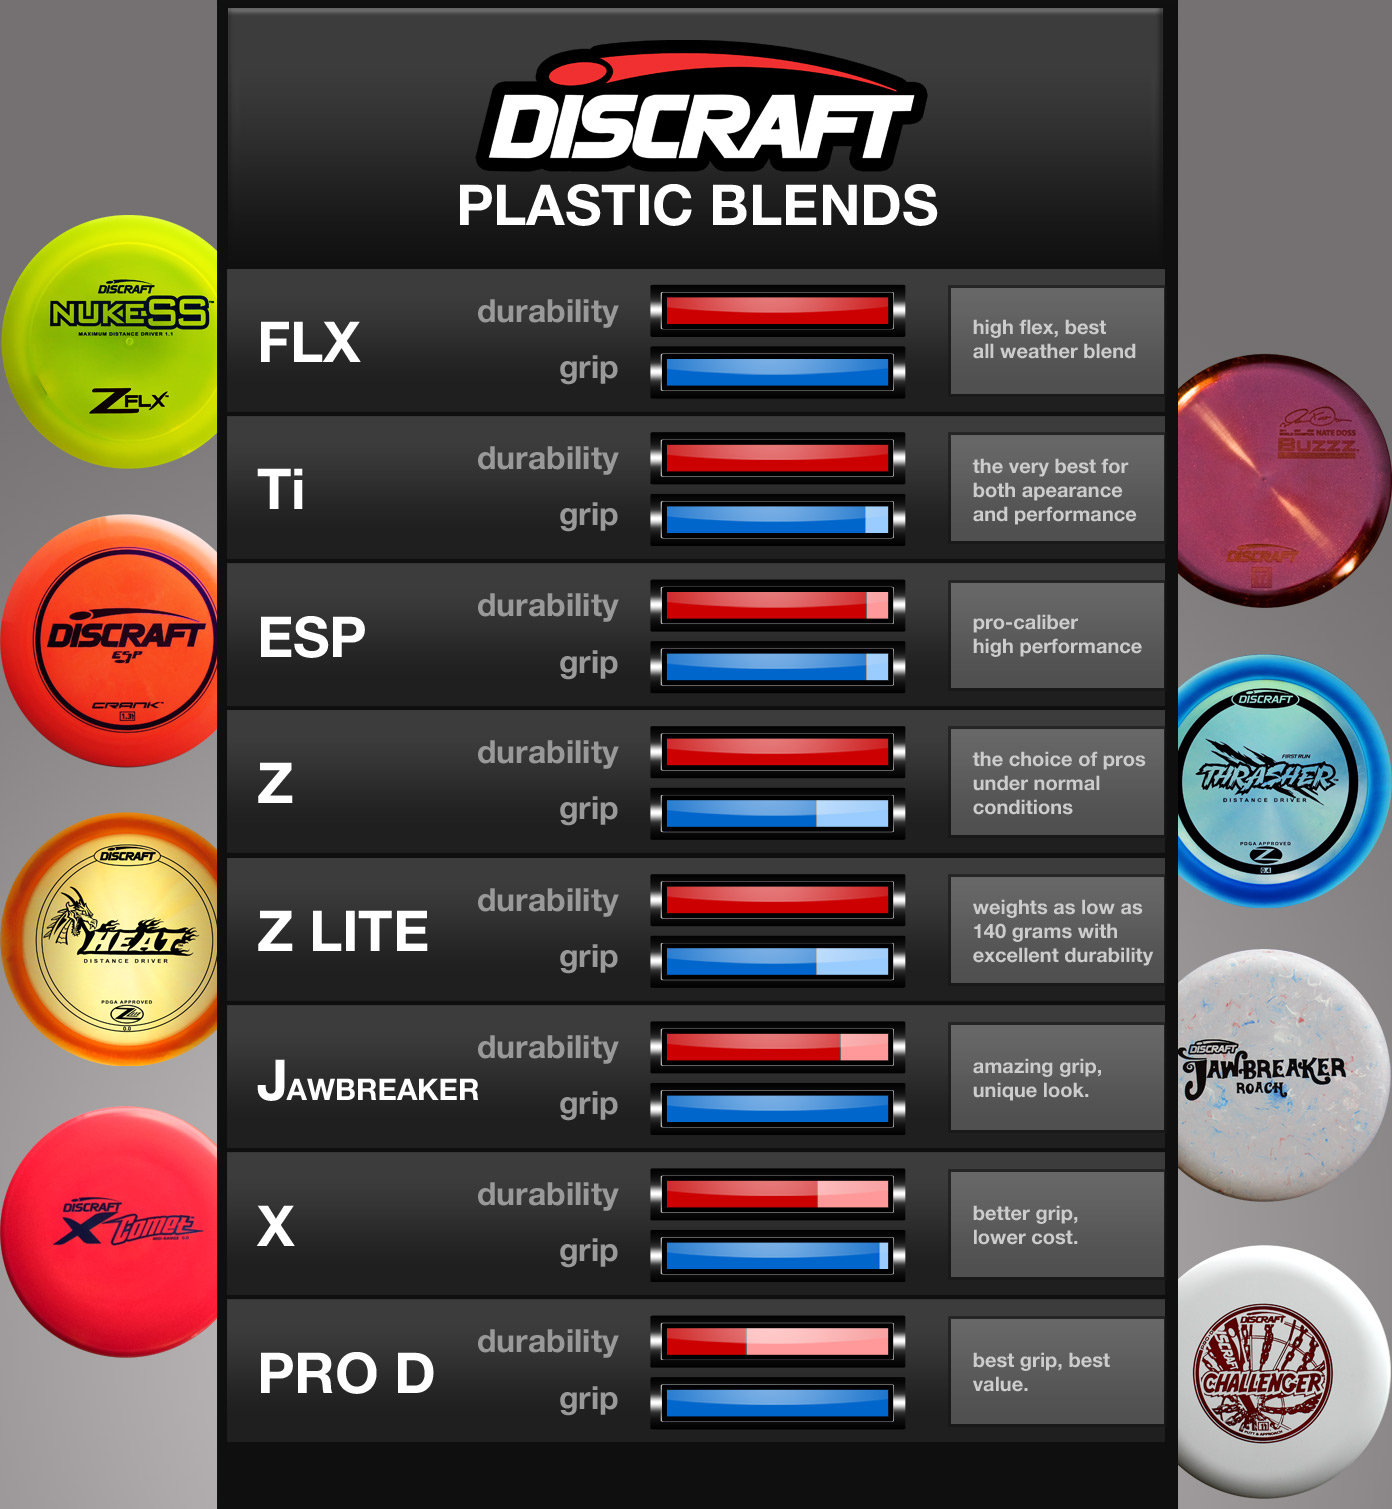 Disc golf plastic blends from discraft